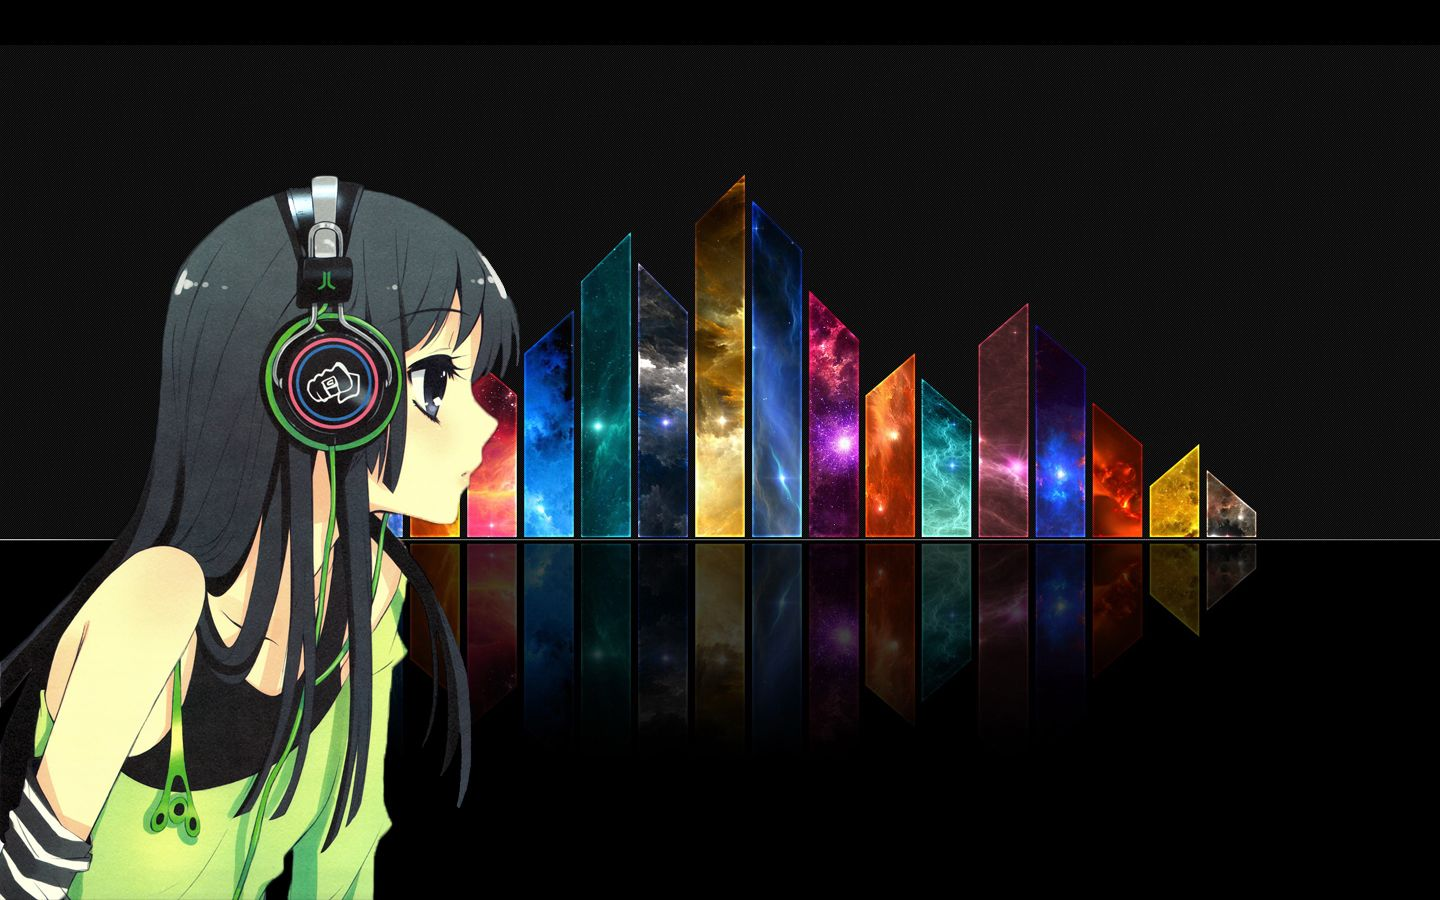 nightcore Abstract wallpaper backgrounds, Abstract wallpaper